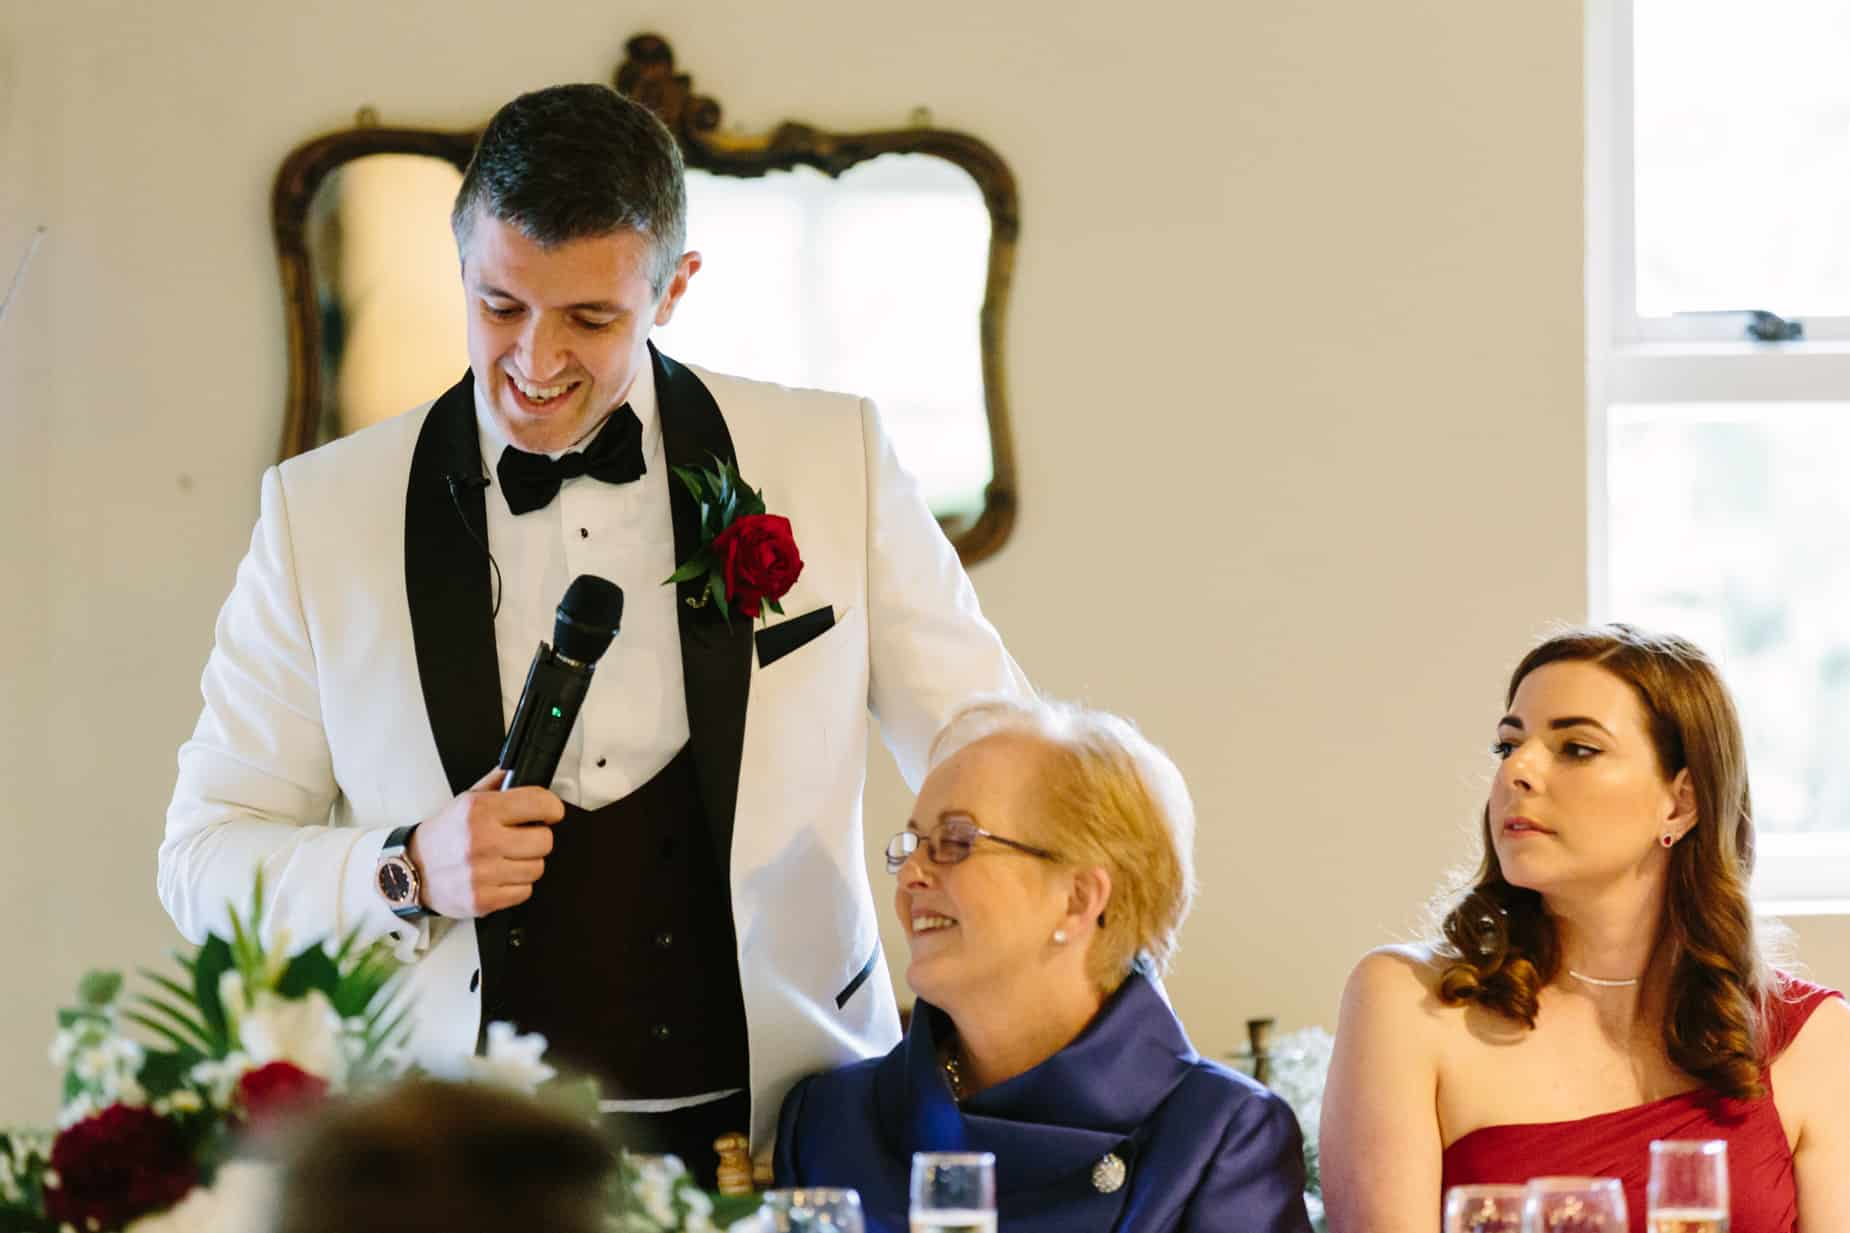 grooms speech at his wedding with his new mother in law